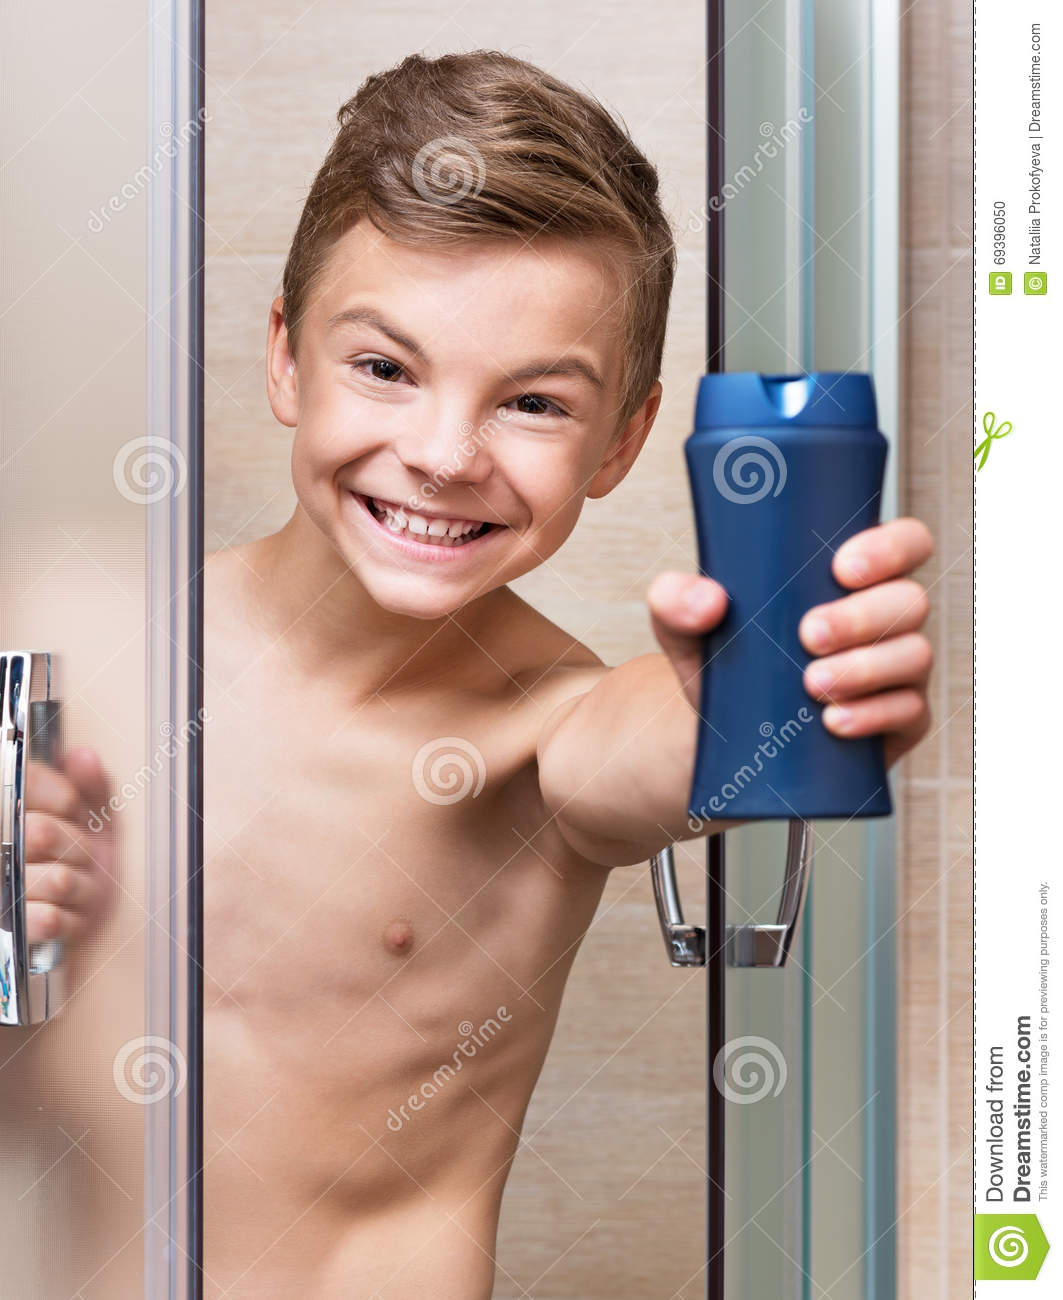 Boy Shower